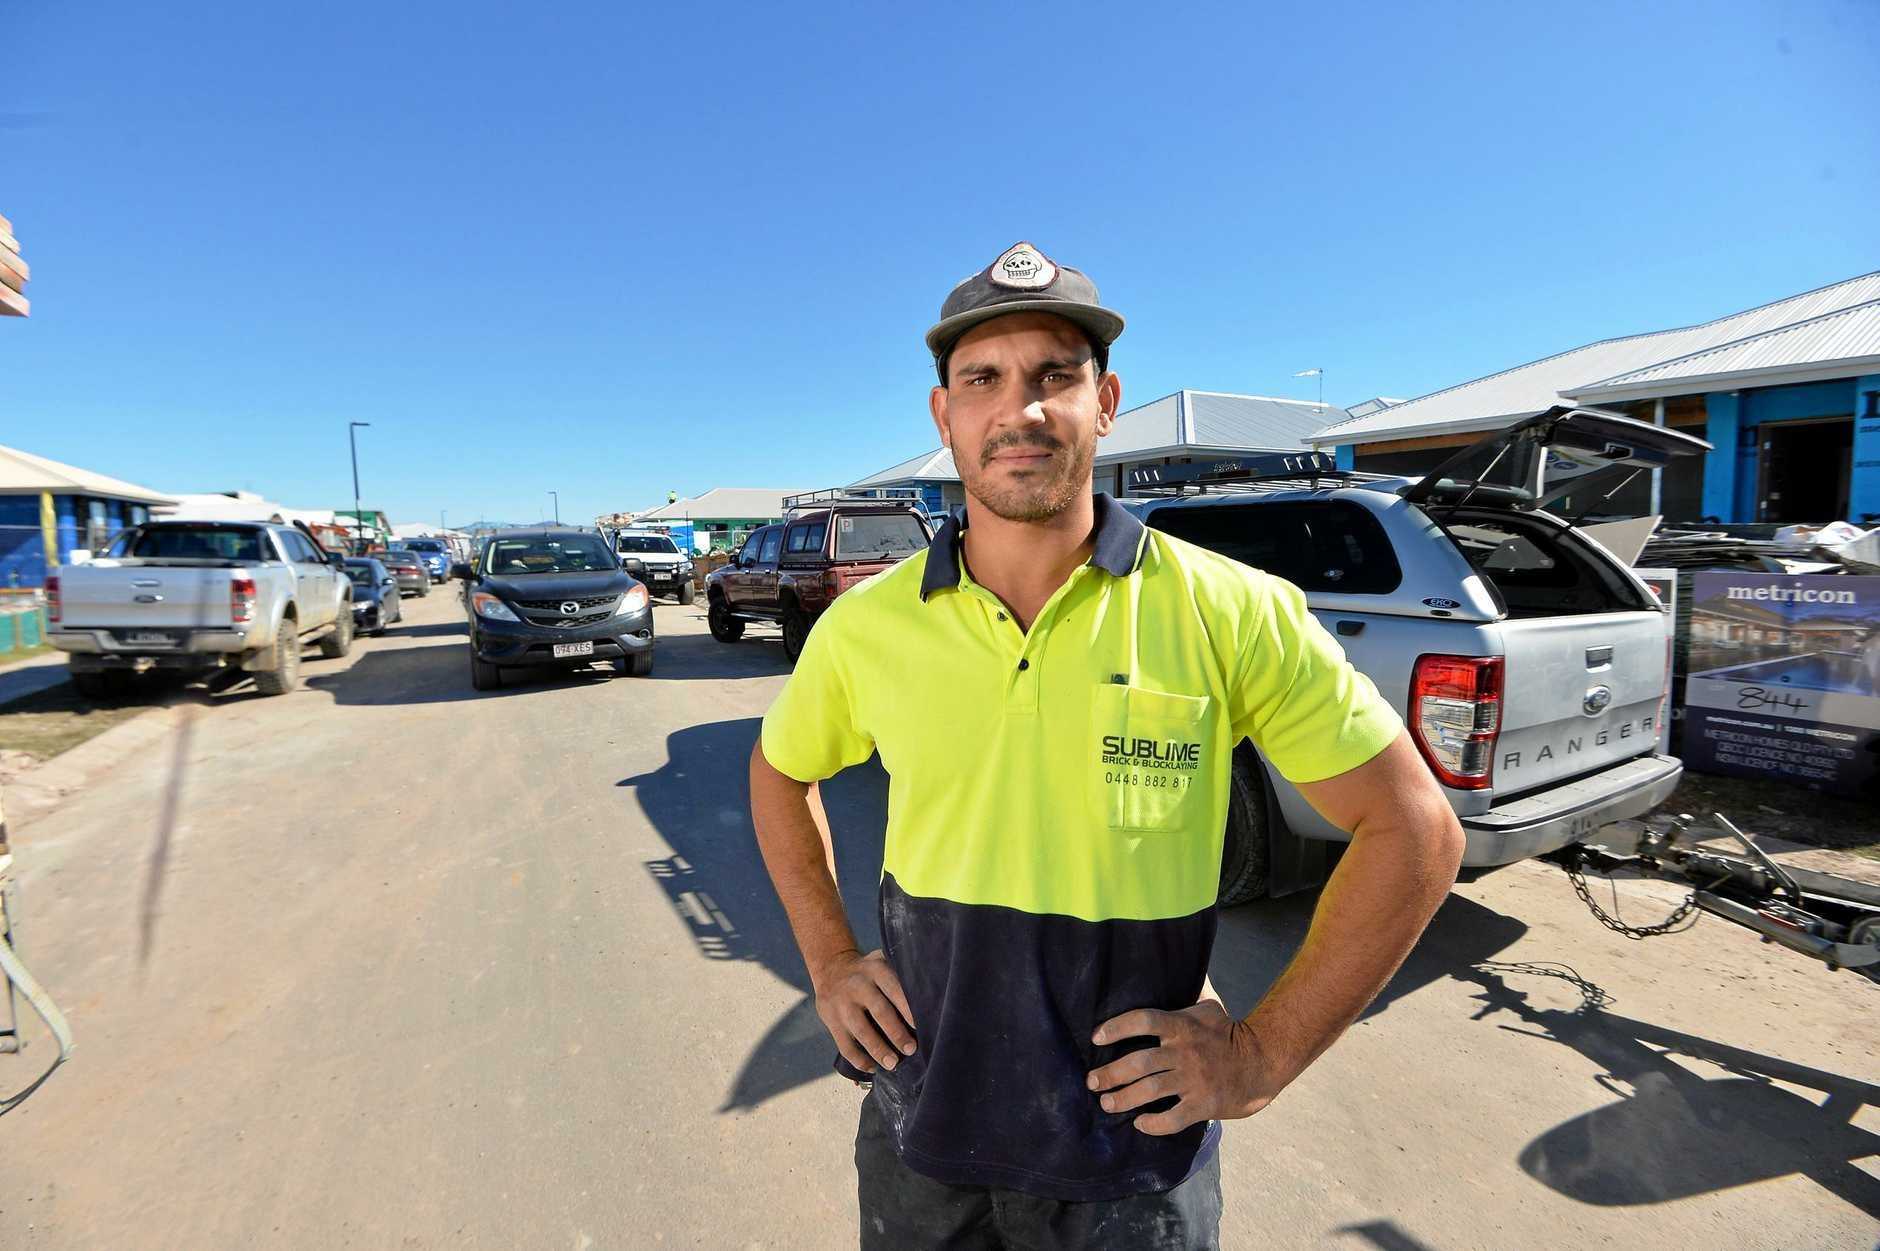 PARKING WOES: Council won't let tradies park on the gutters and there's no room on Beale Street, Caloundra West, with new suburb housing construction. Brodie Sharman works as a bricklayer in Aura almost every day and says he's surprised no one's been hurt yet.